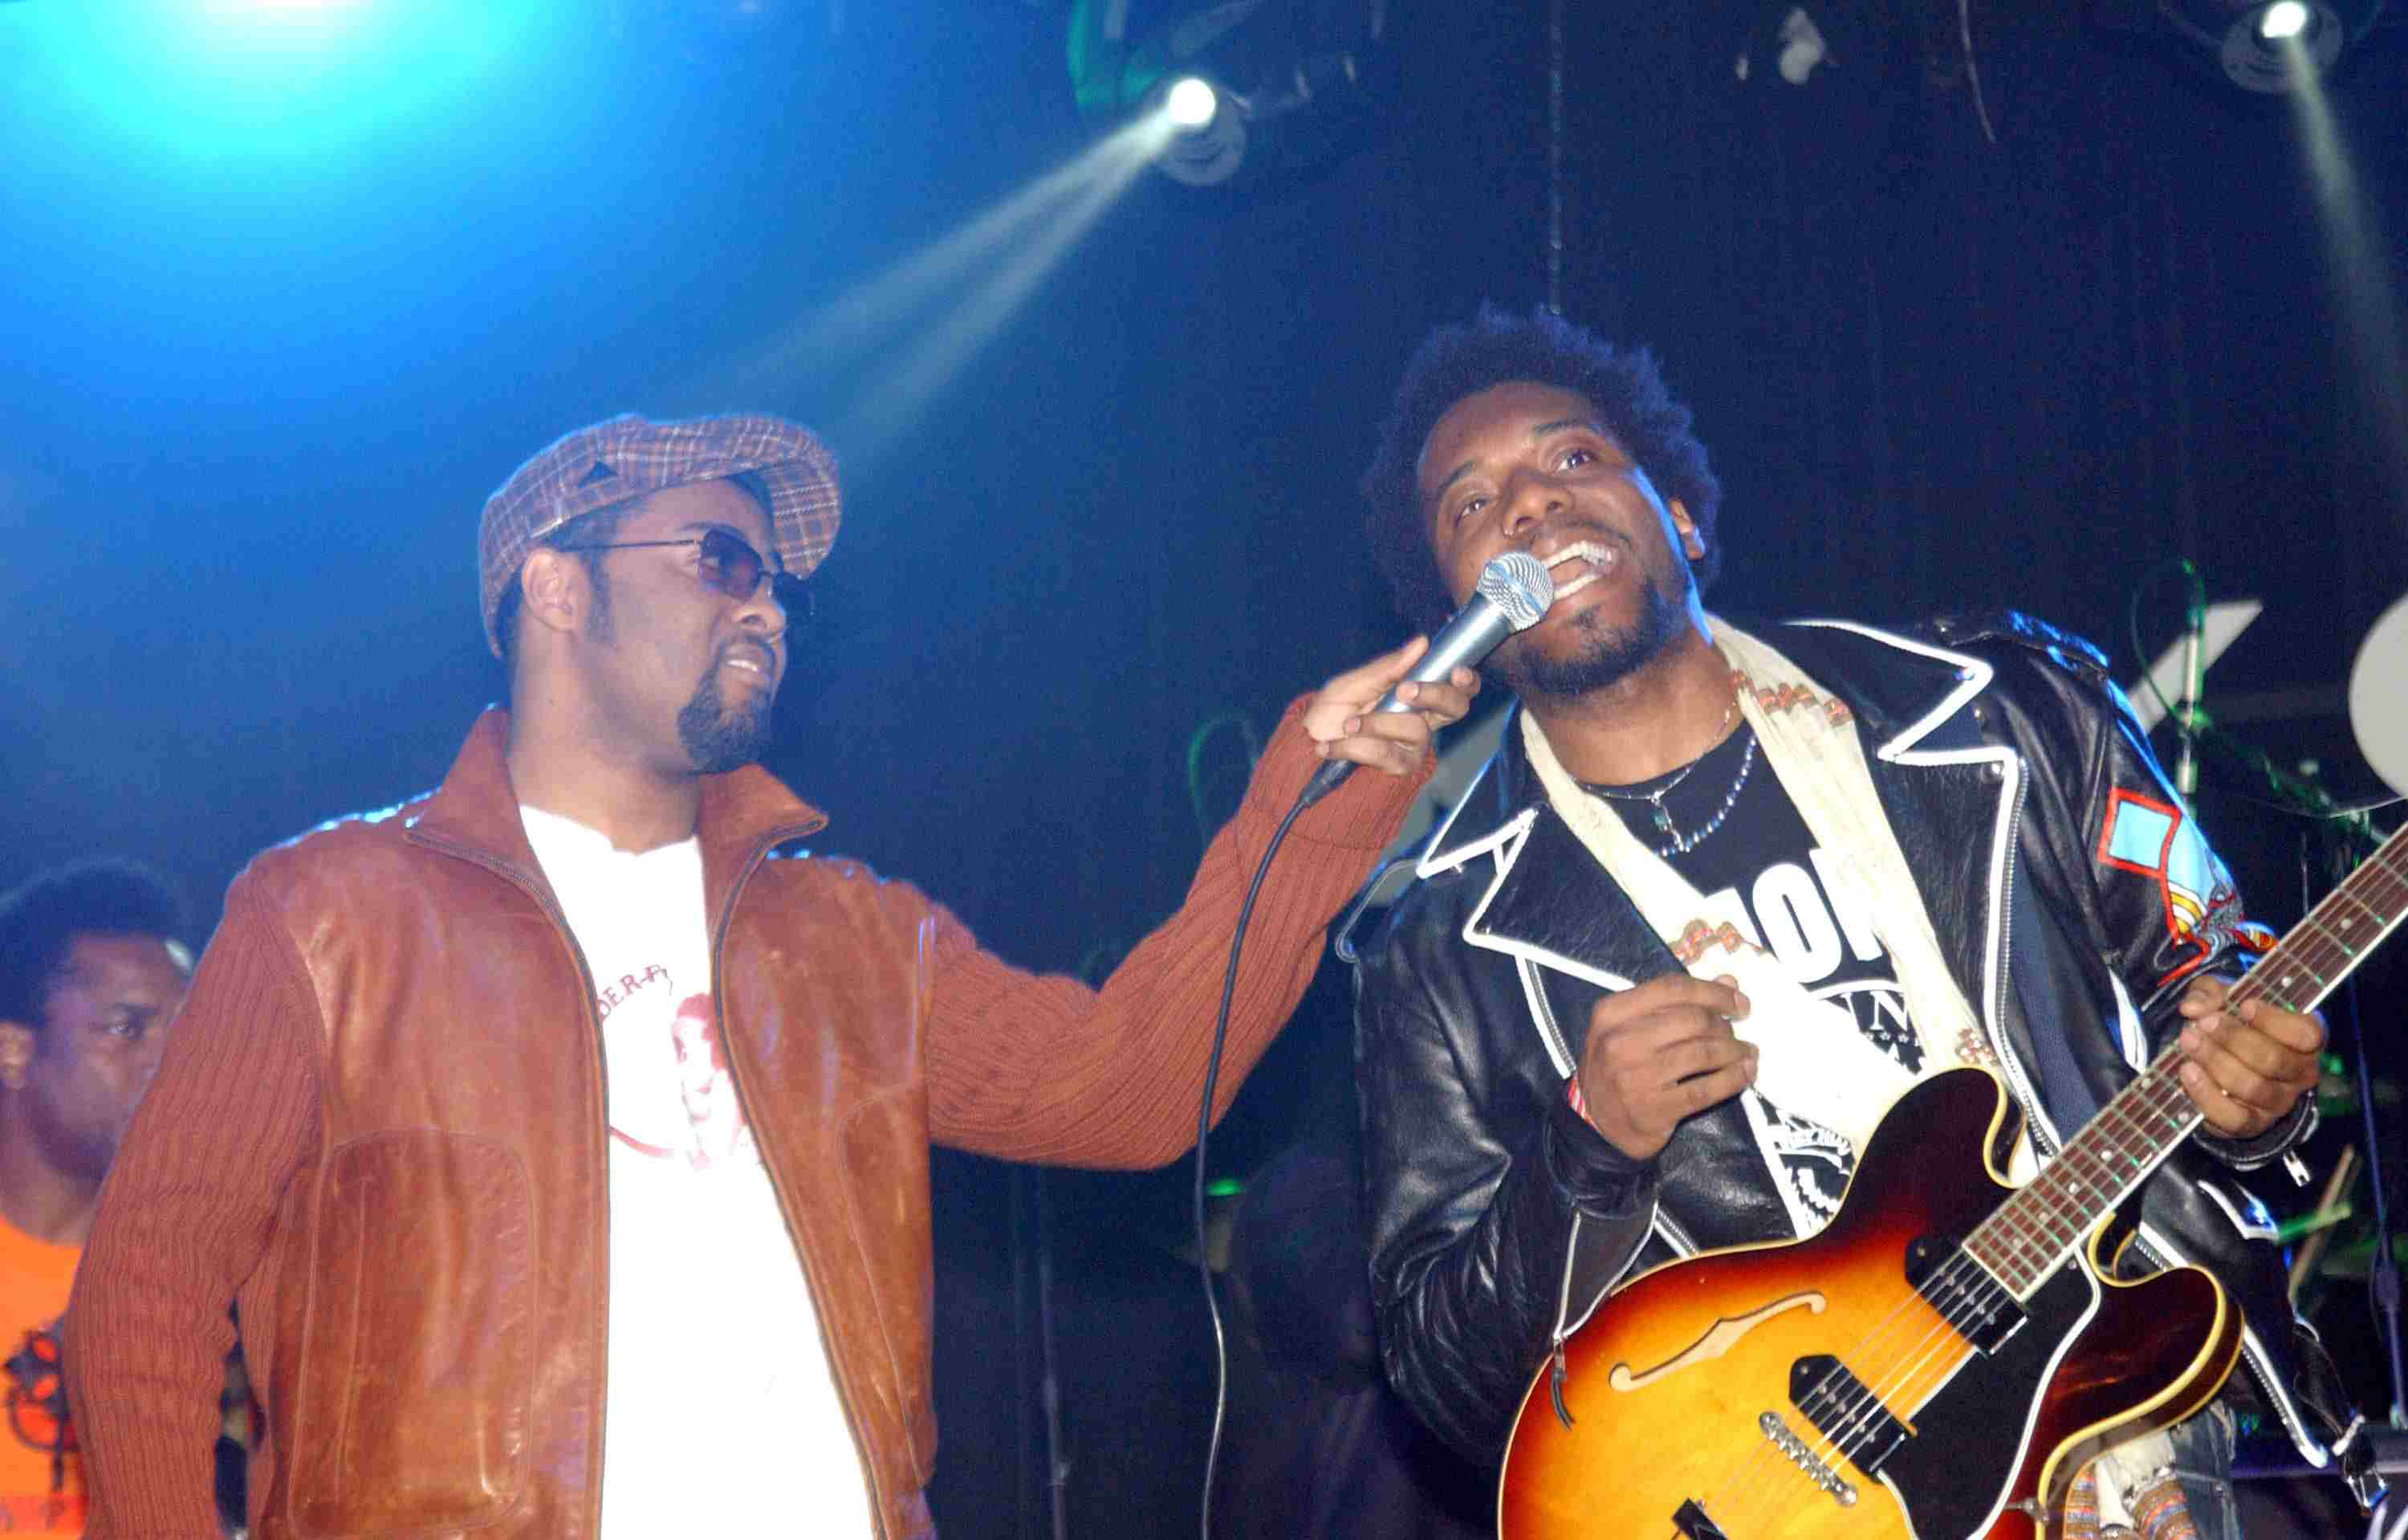 musiq performs with the roots